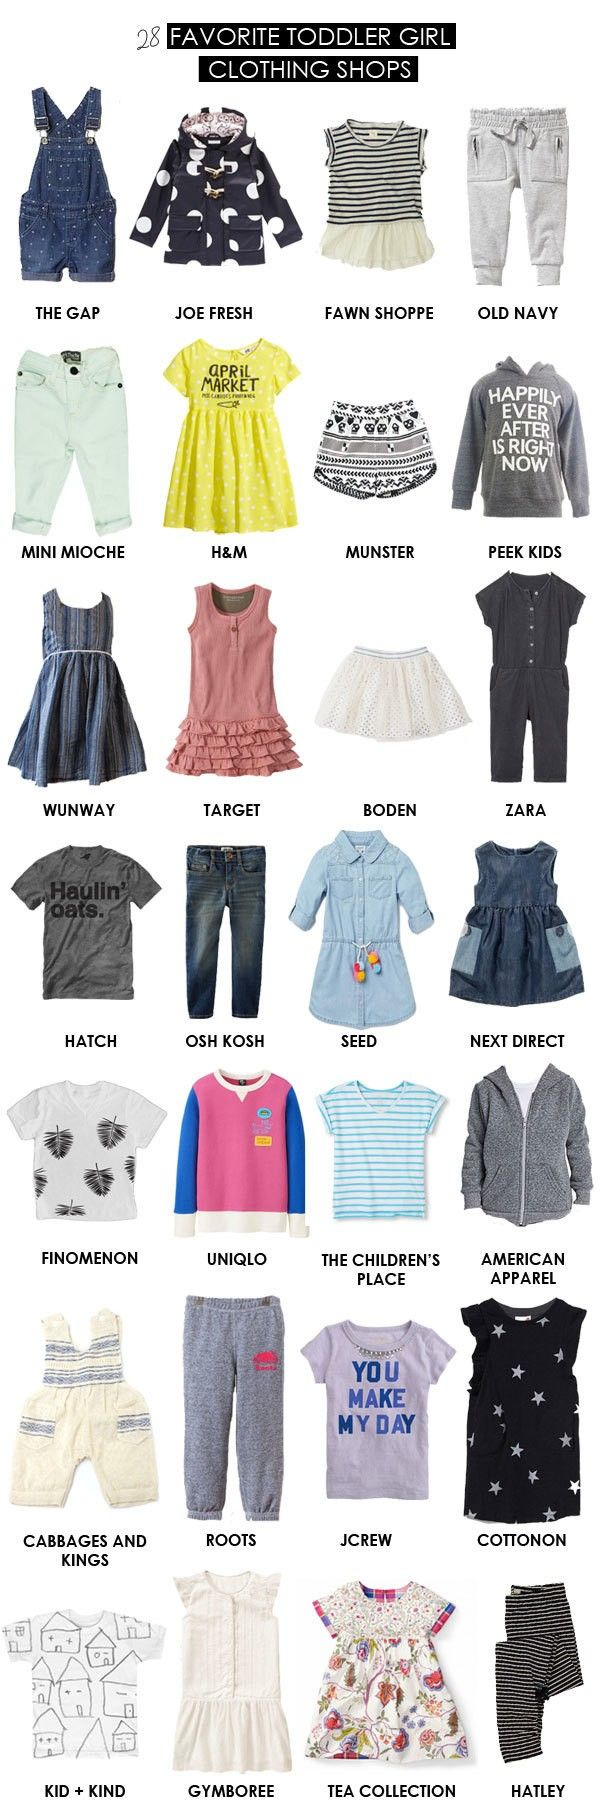 Favorite Toddler Girl Clothing Shops | Hellobee